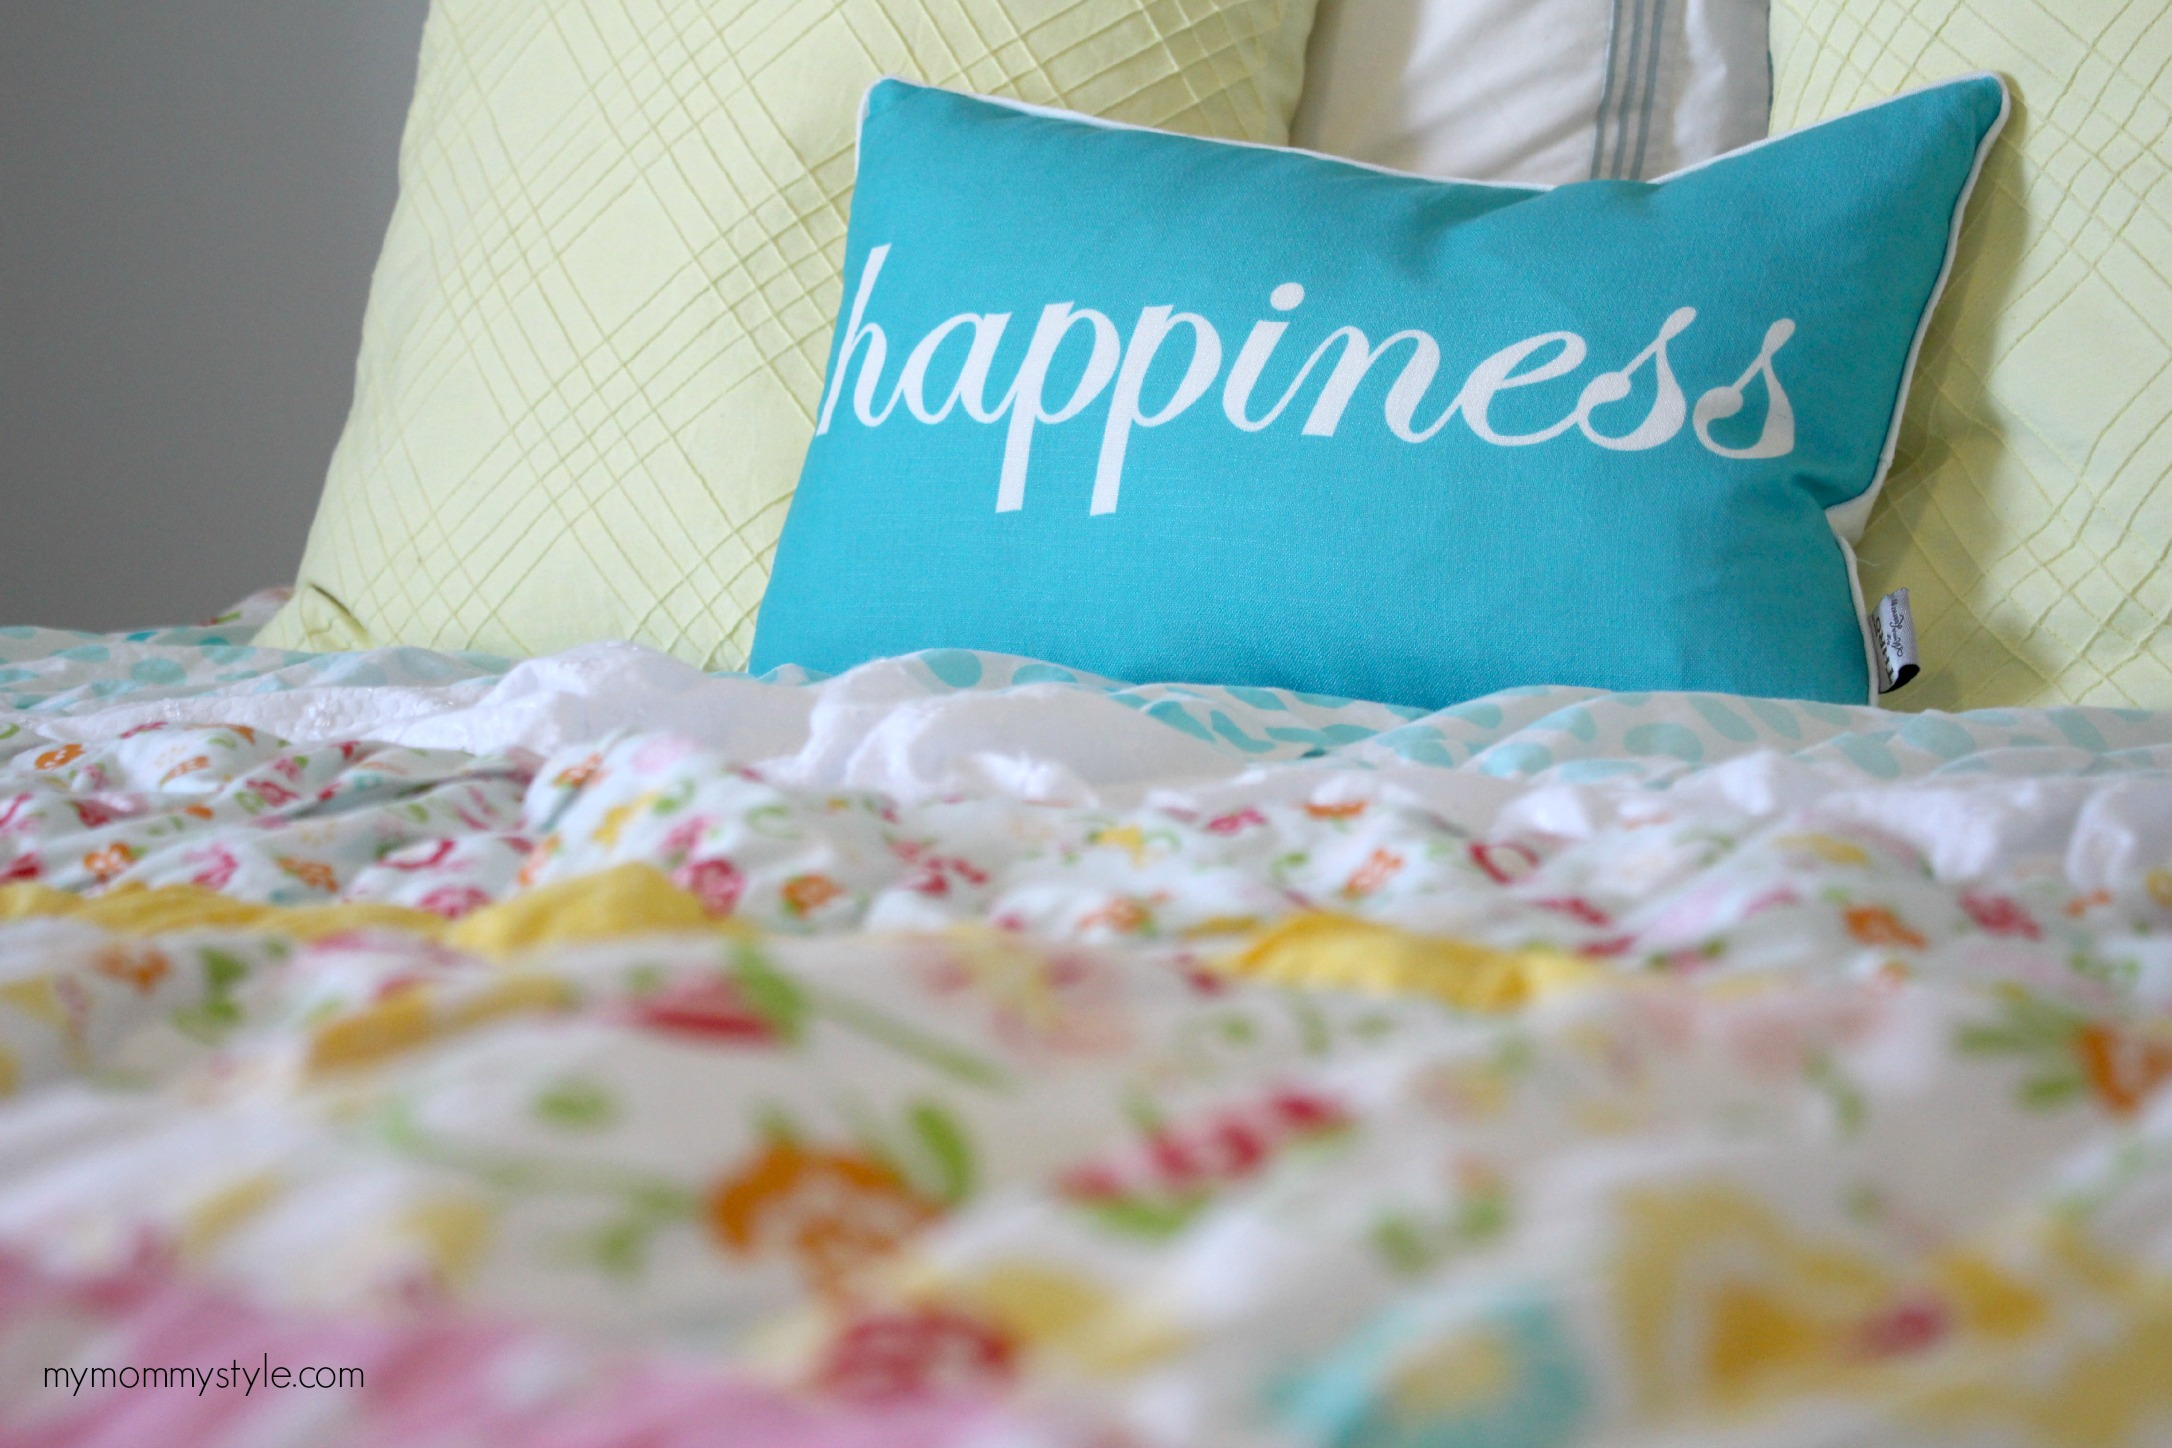 happiness, little girls room, mymommystyle, riley blake fabric